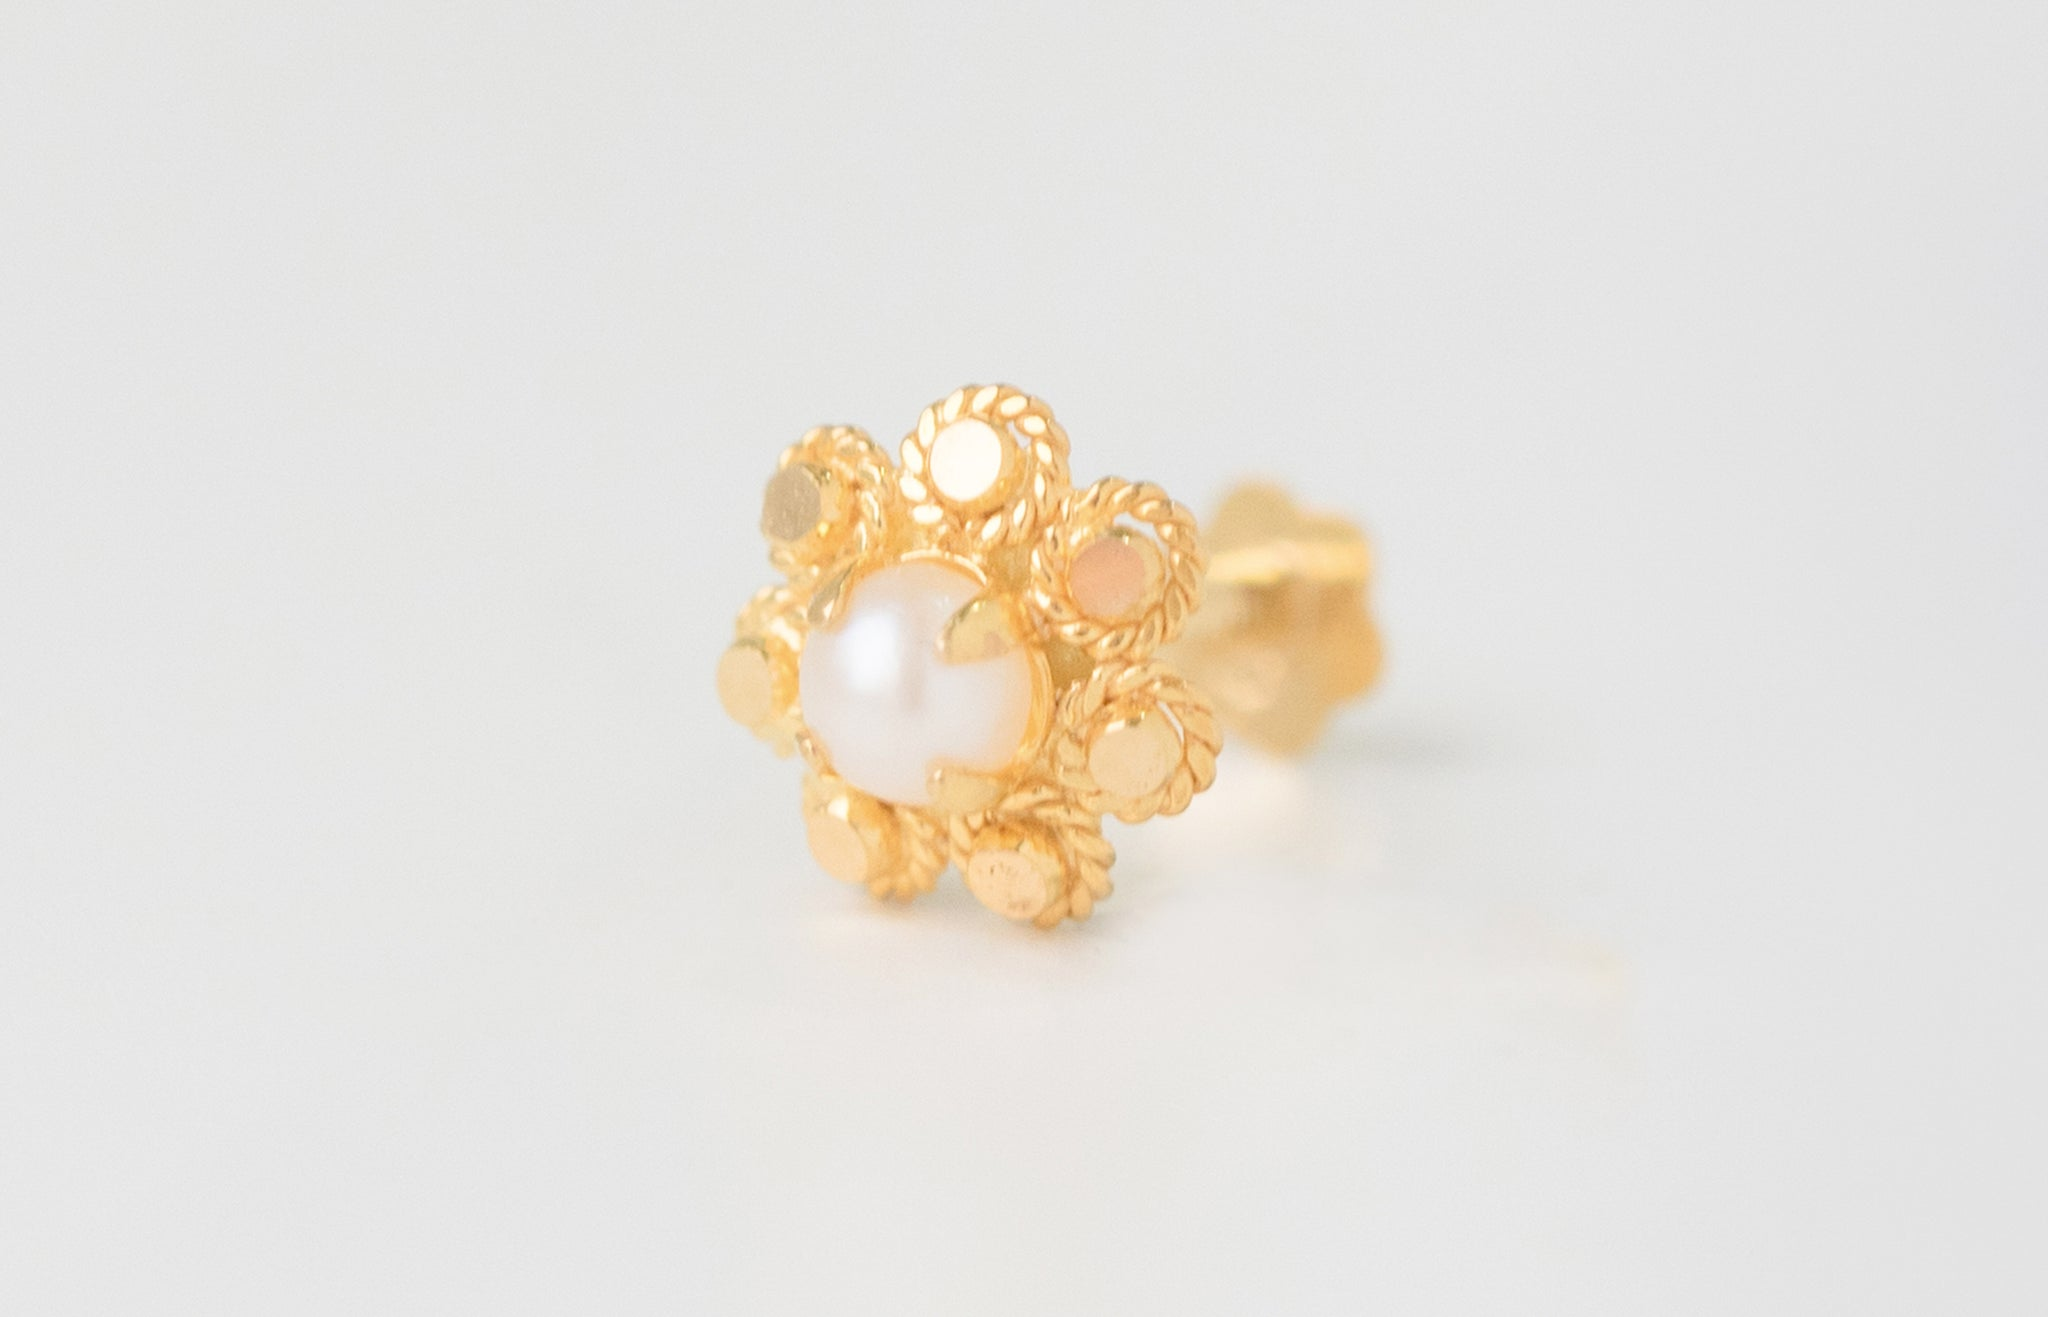 18ct Yellow Gold Screw Back Nose Stud set with a Cultured Pearl NIP-6-770a